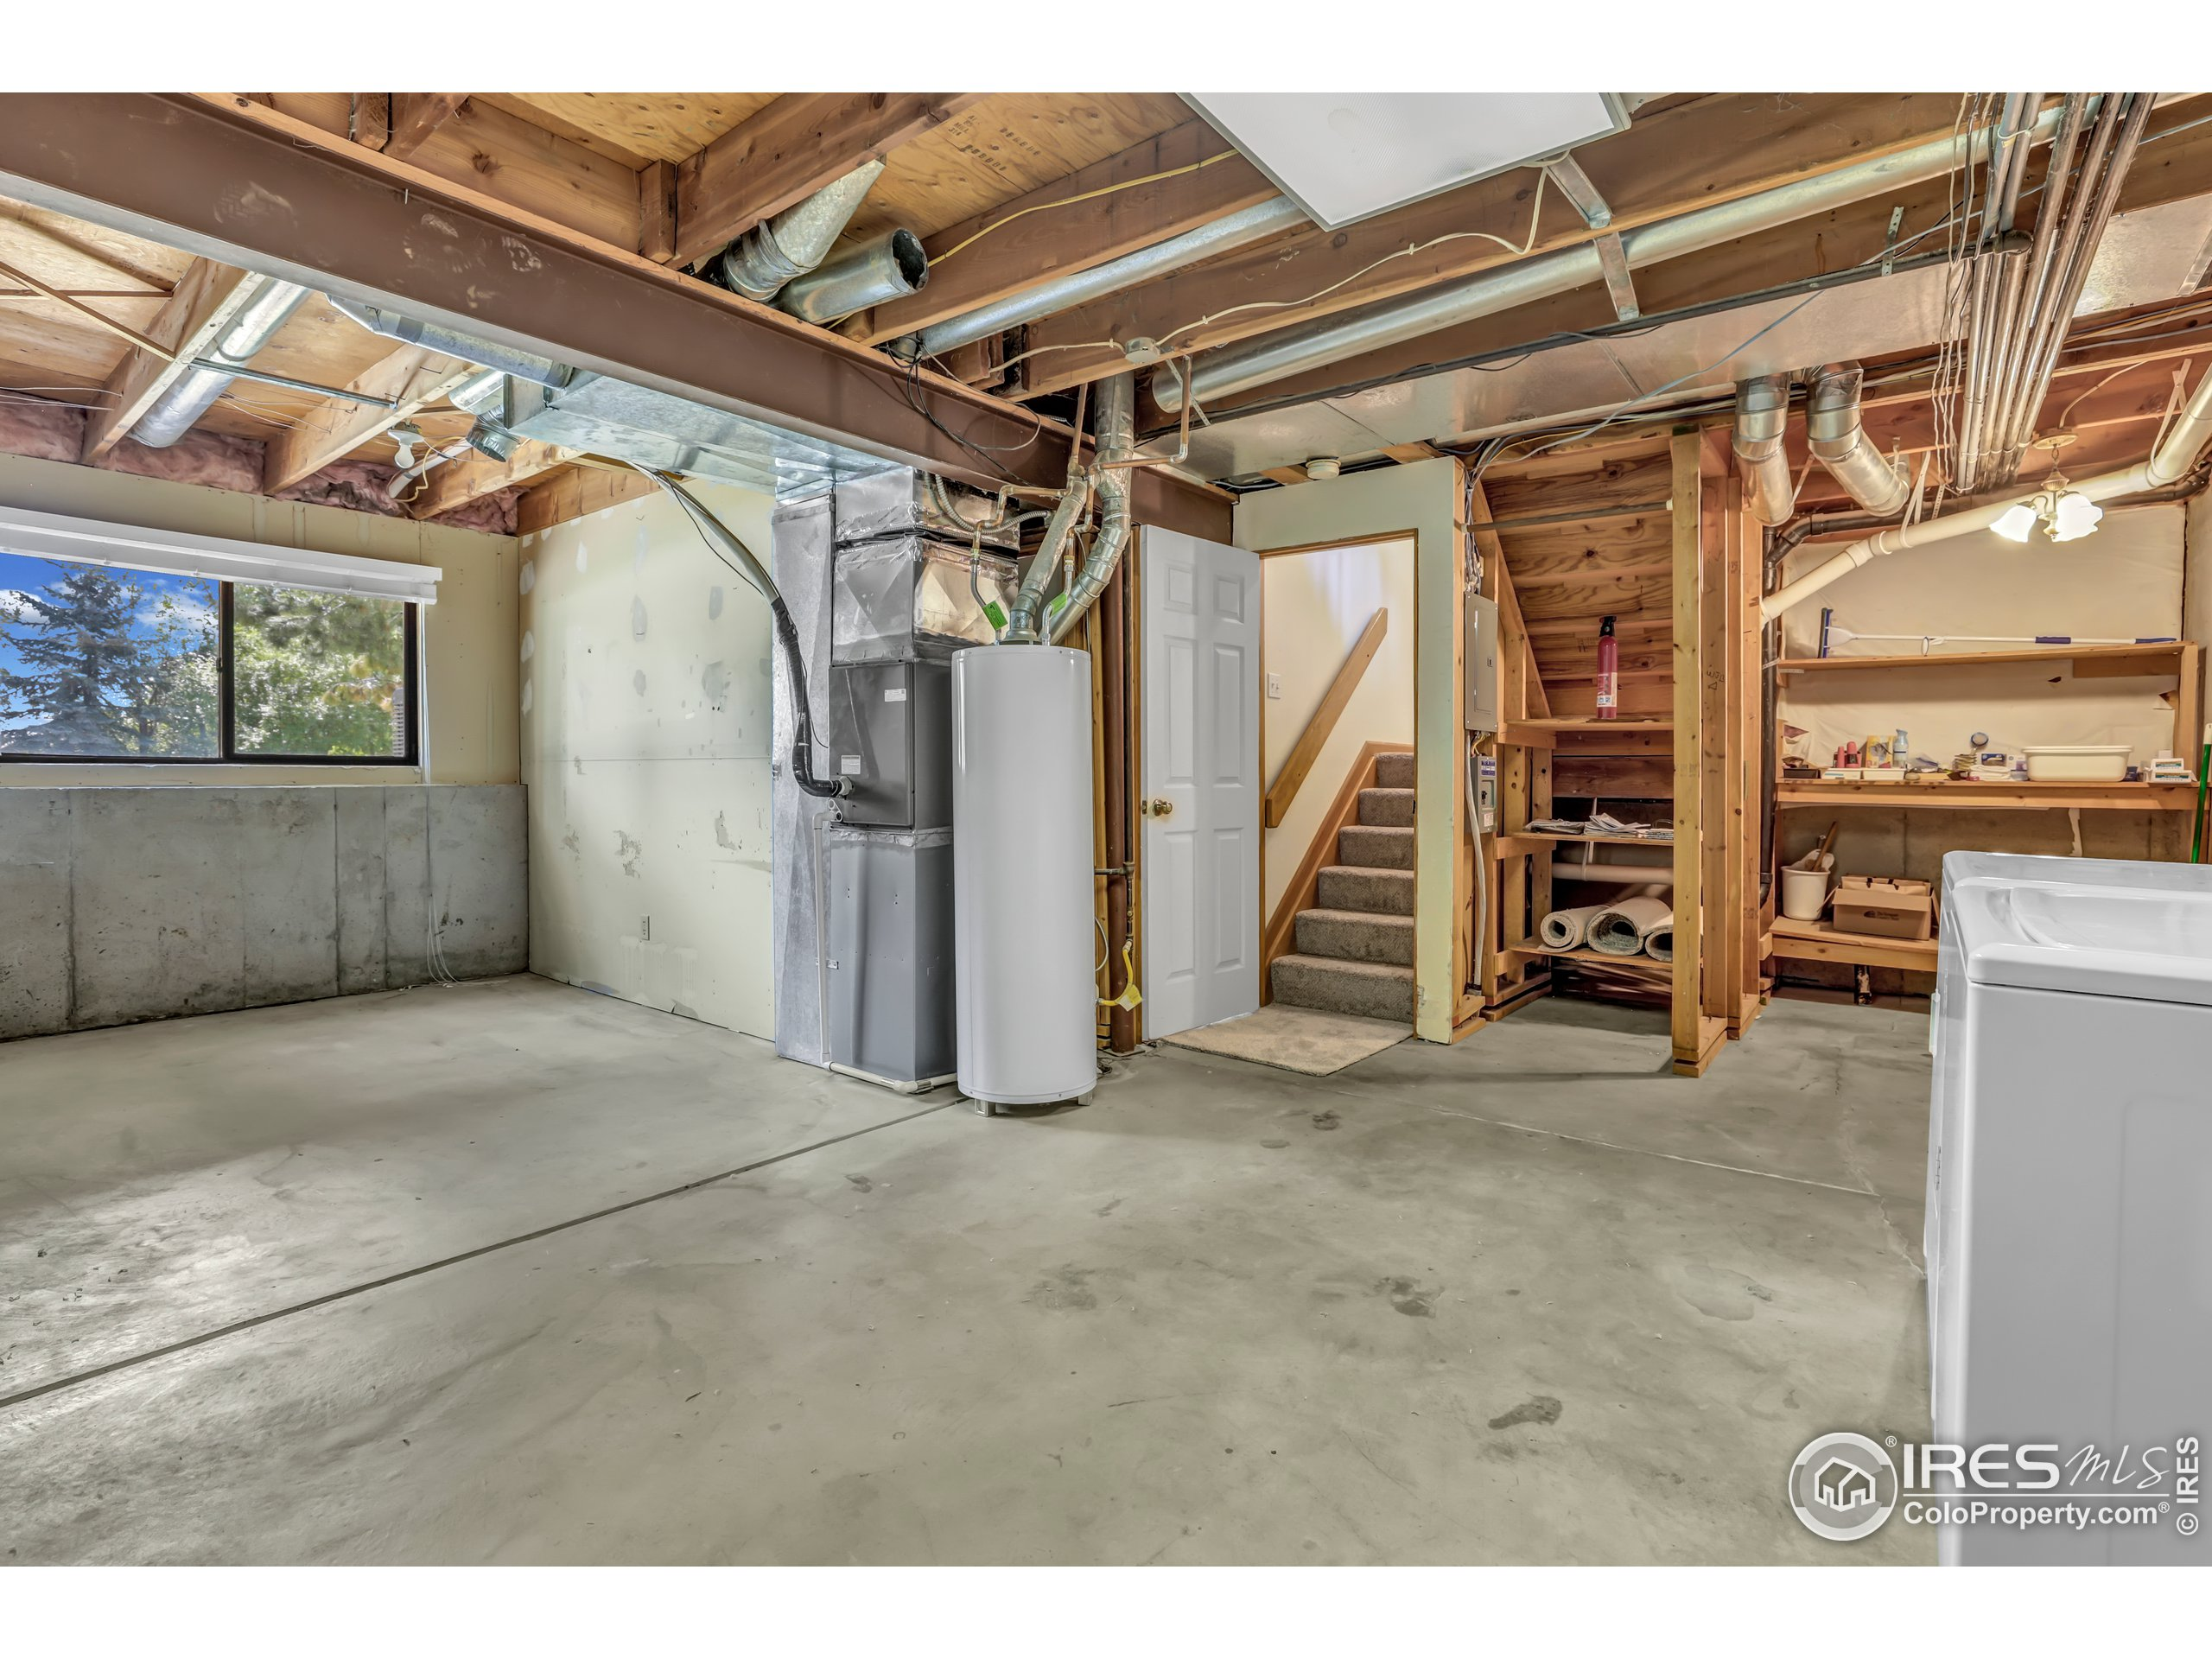 Large unfinished basement WITH 3RD BEDROOM! (not in photo)